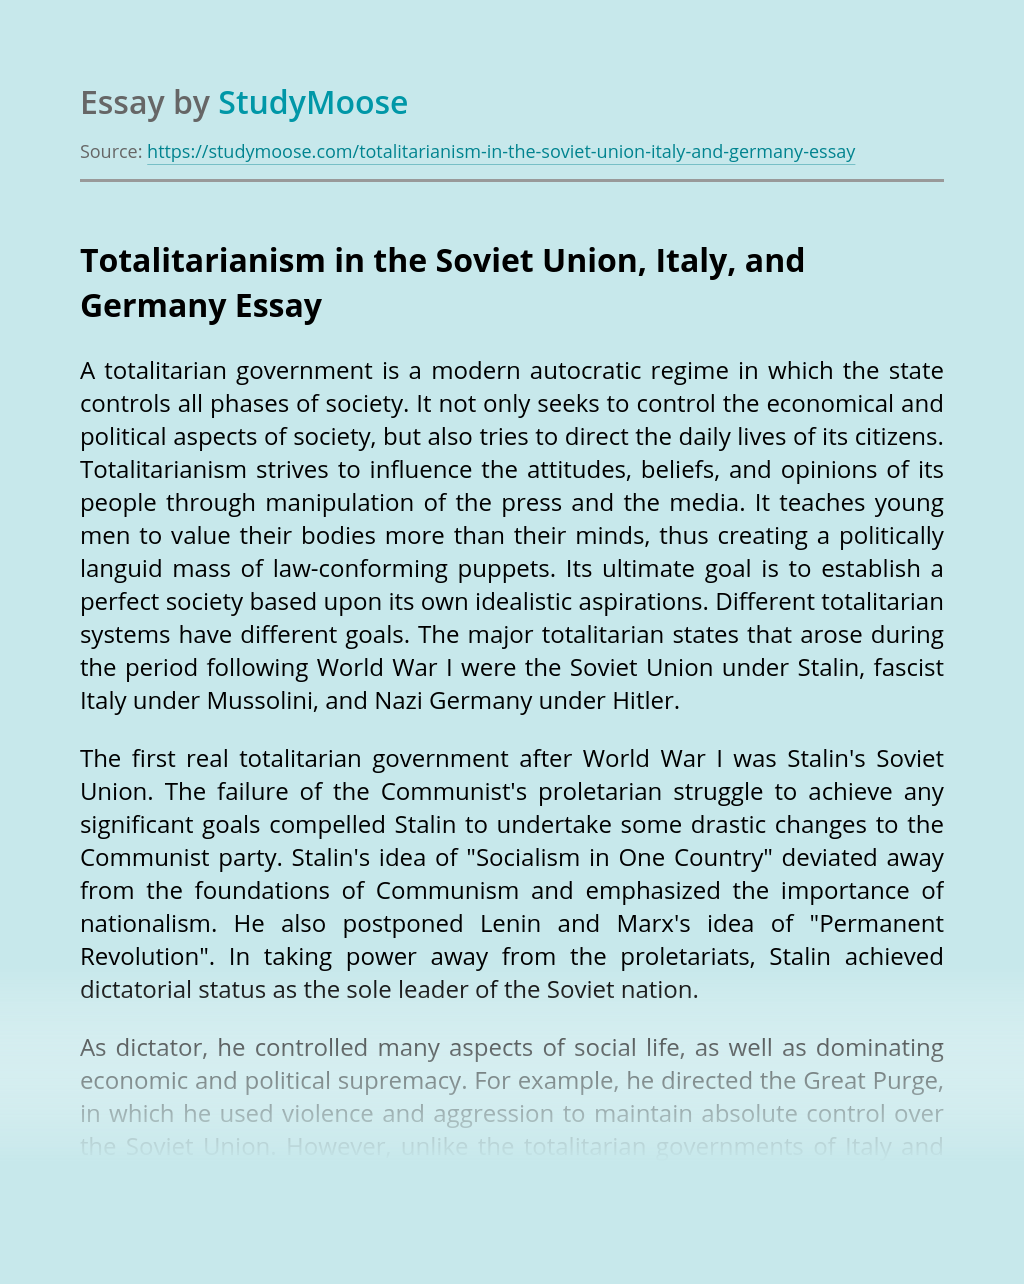 Totalitarianism in the Soviet Union, Italy, and Germany